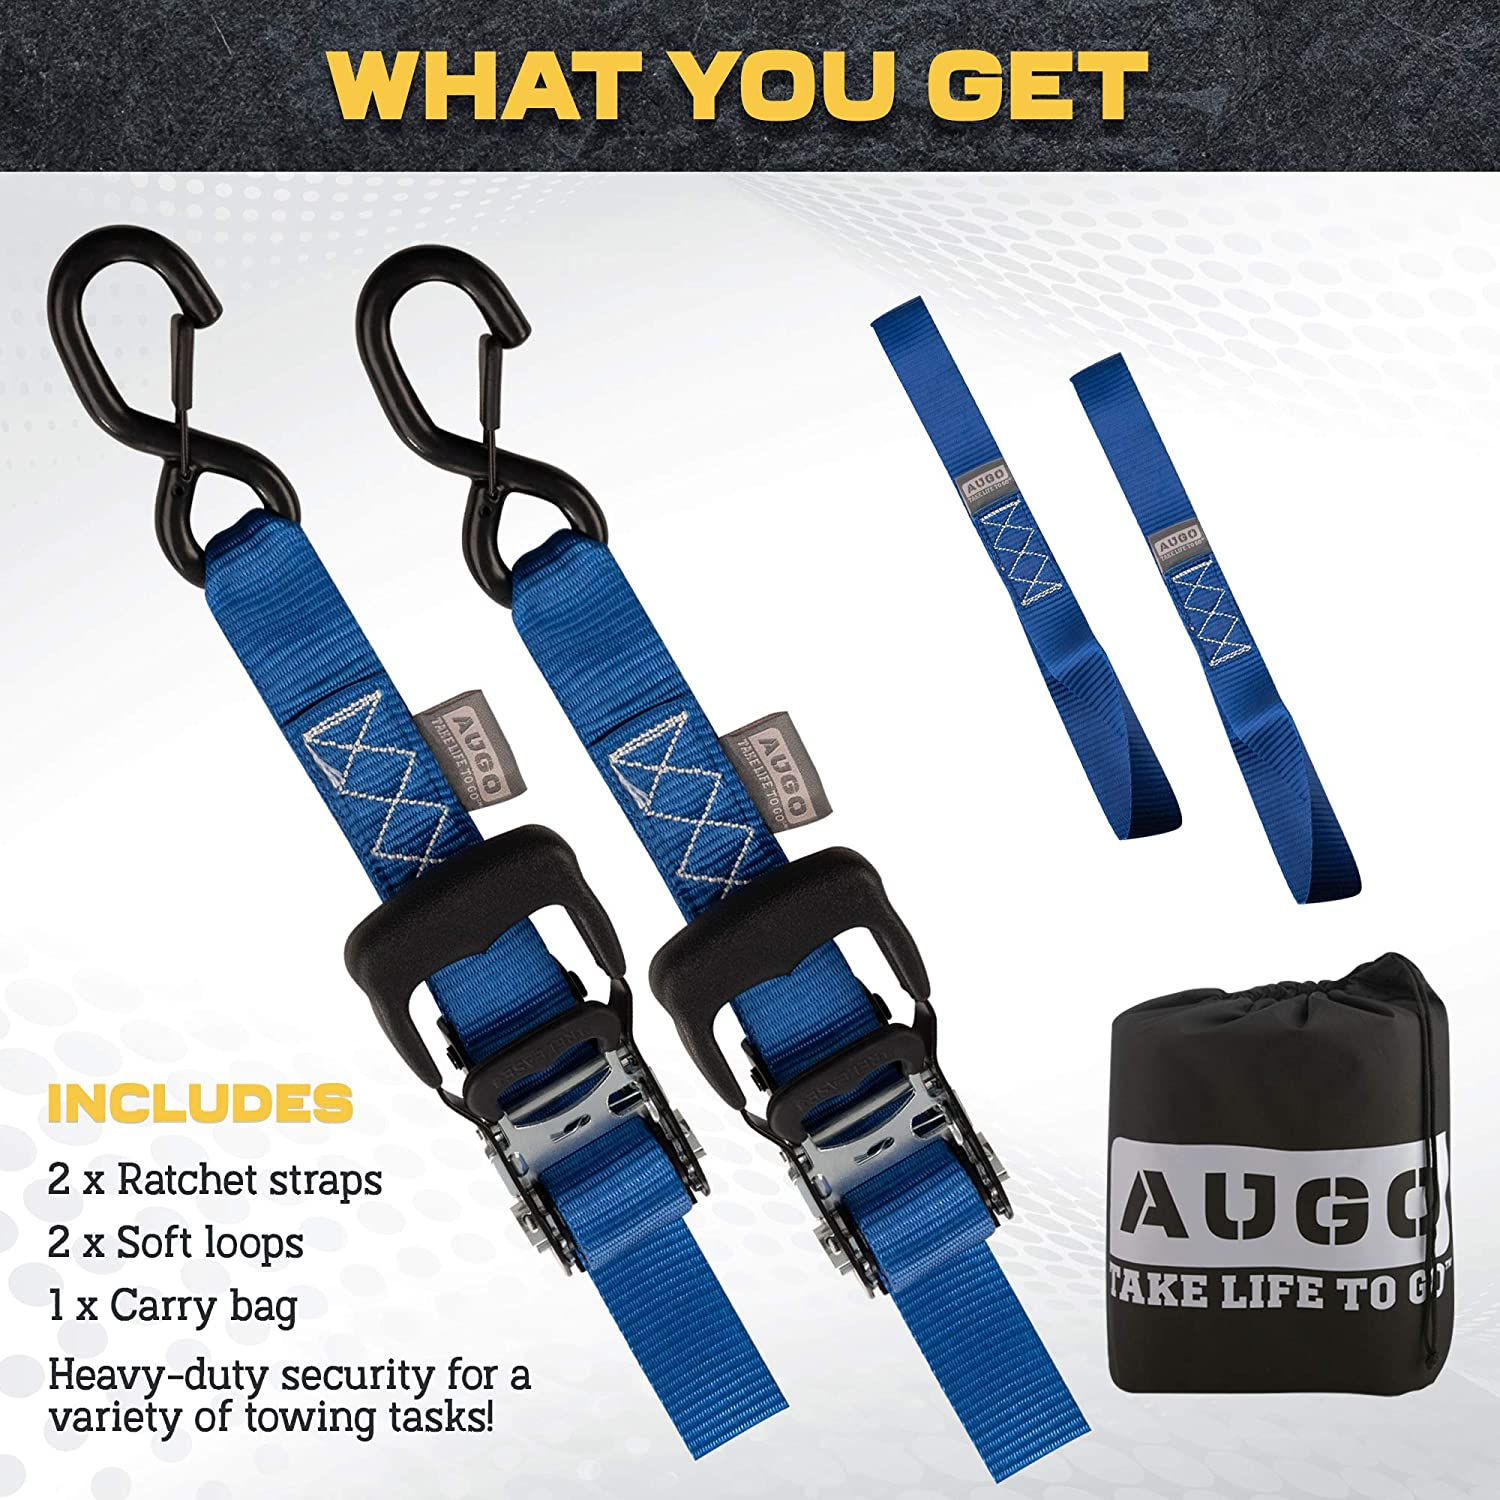 """4400Lb Break Strength for Motorcycles ATVs AUGO Heavy Duty Ratchet Straps /& Soft Loops Etc. Pack of 2 Extra Strong 1.5/"""" by 10/' Ratchet Straps w//S-Hook Safety Latches /& 2 Soft Loop Tie Downs"""